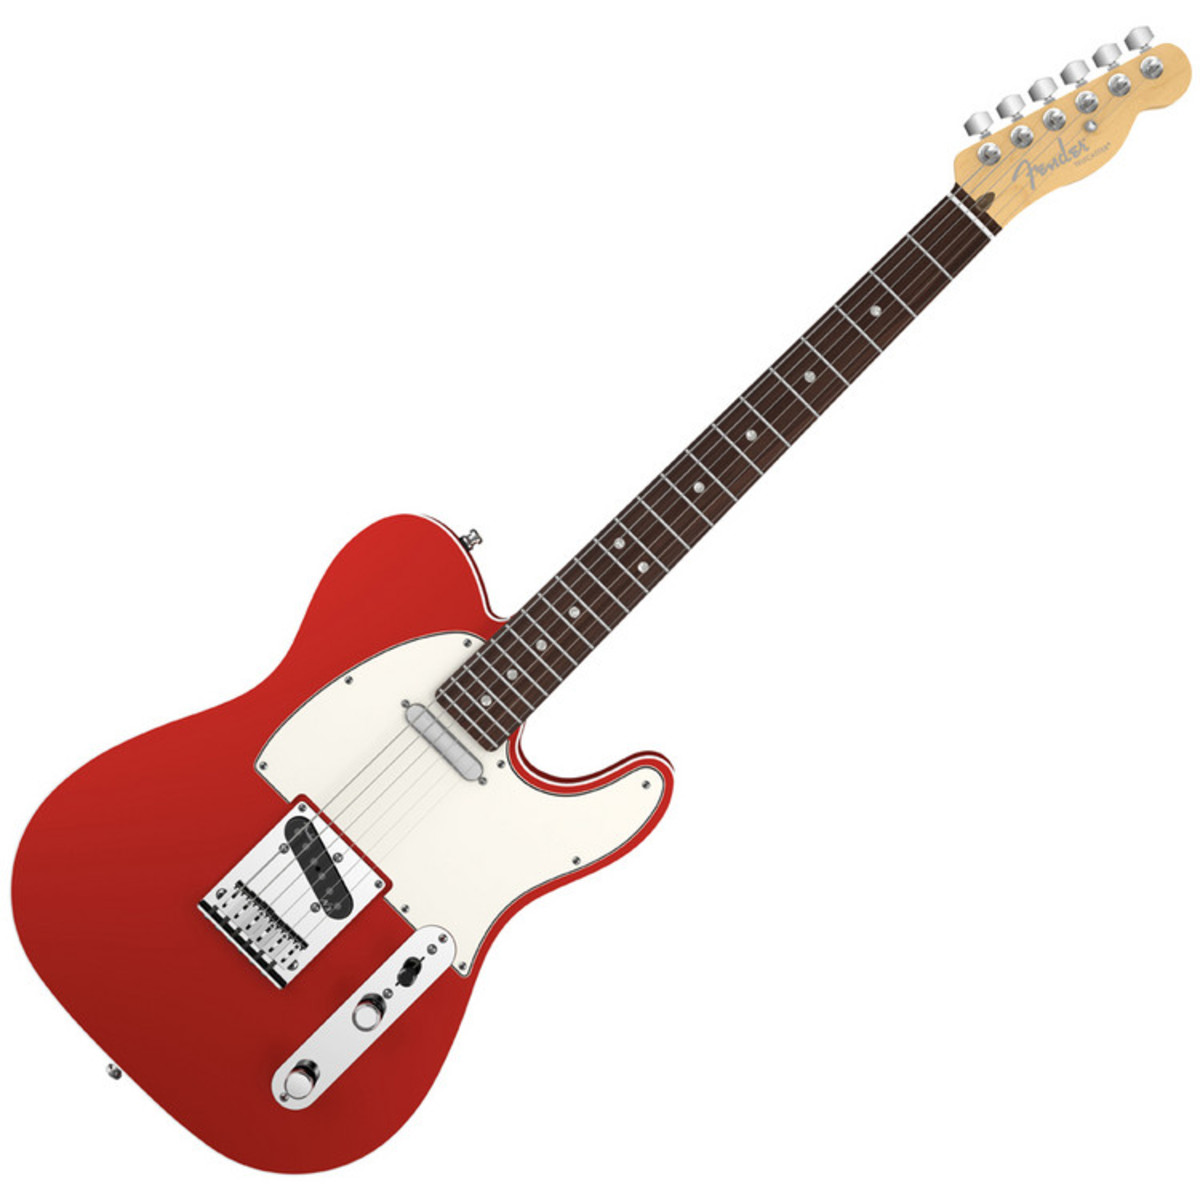 fender american deluxe telecaster rw candy apple red at gear4music. Black Bedroom Furniture Sets. Home Design Ideas